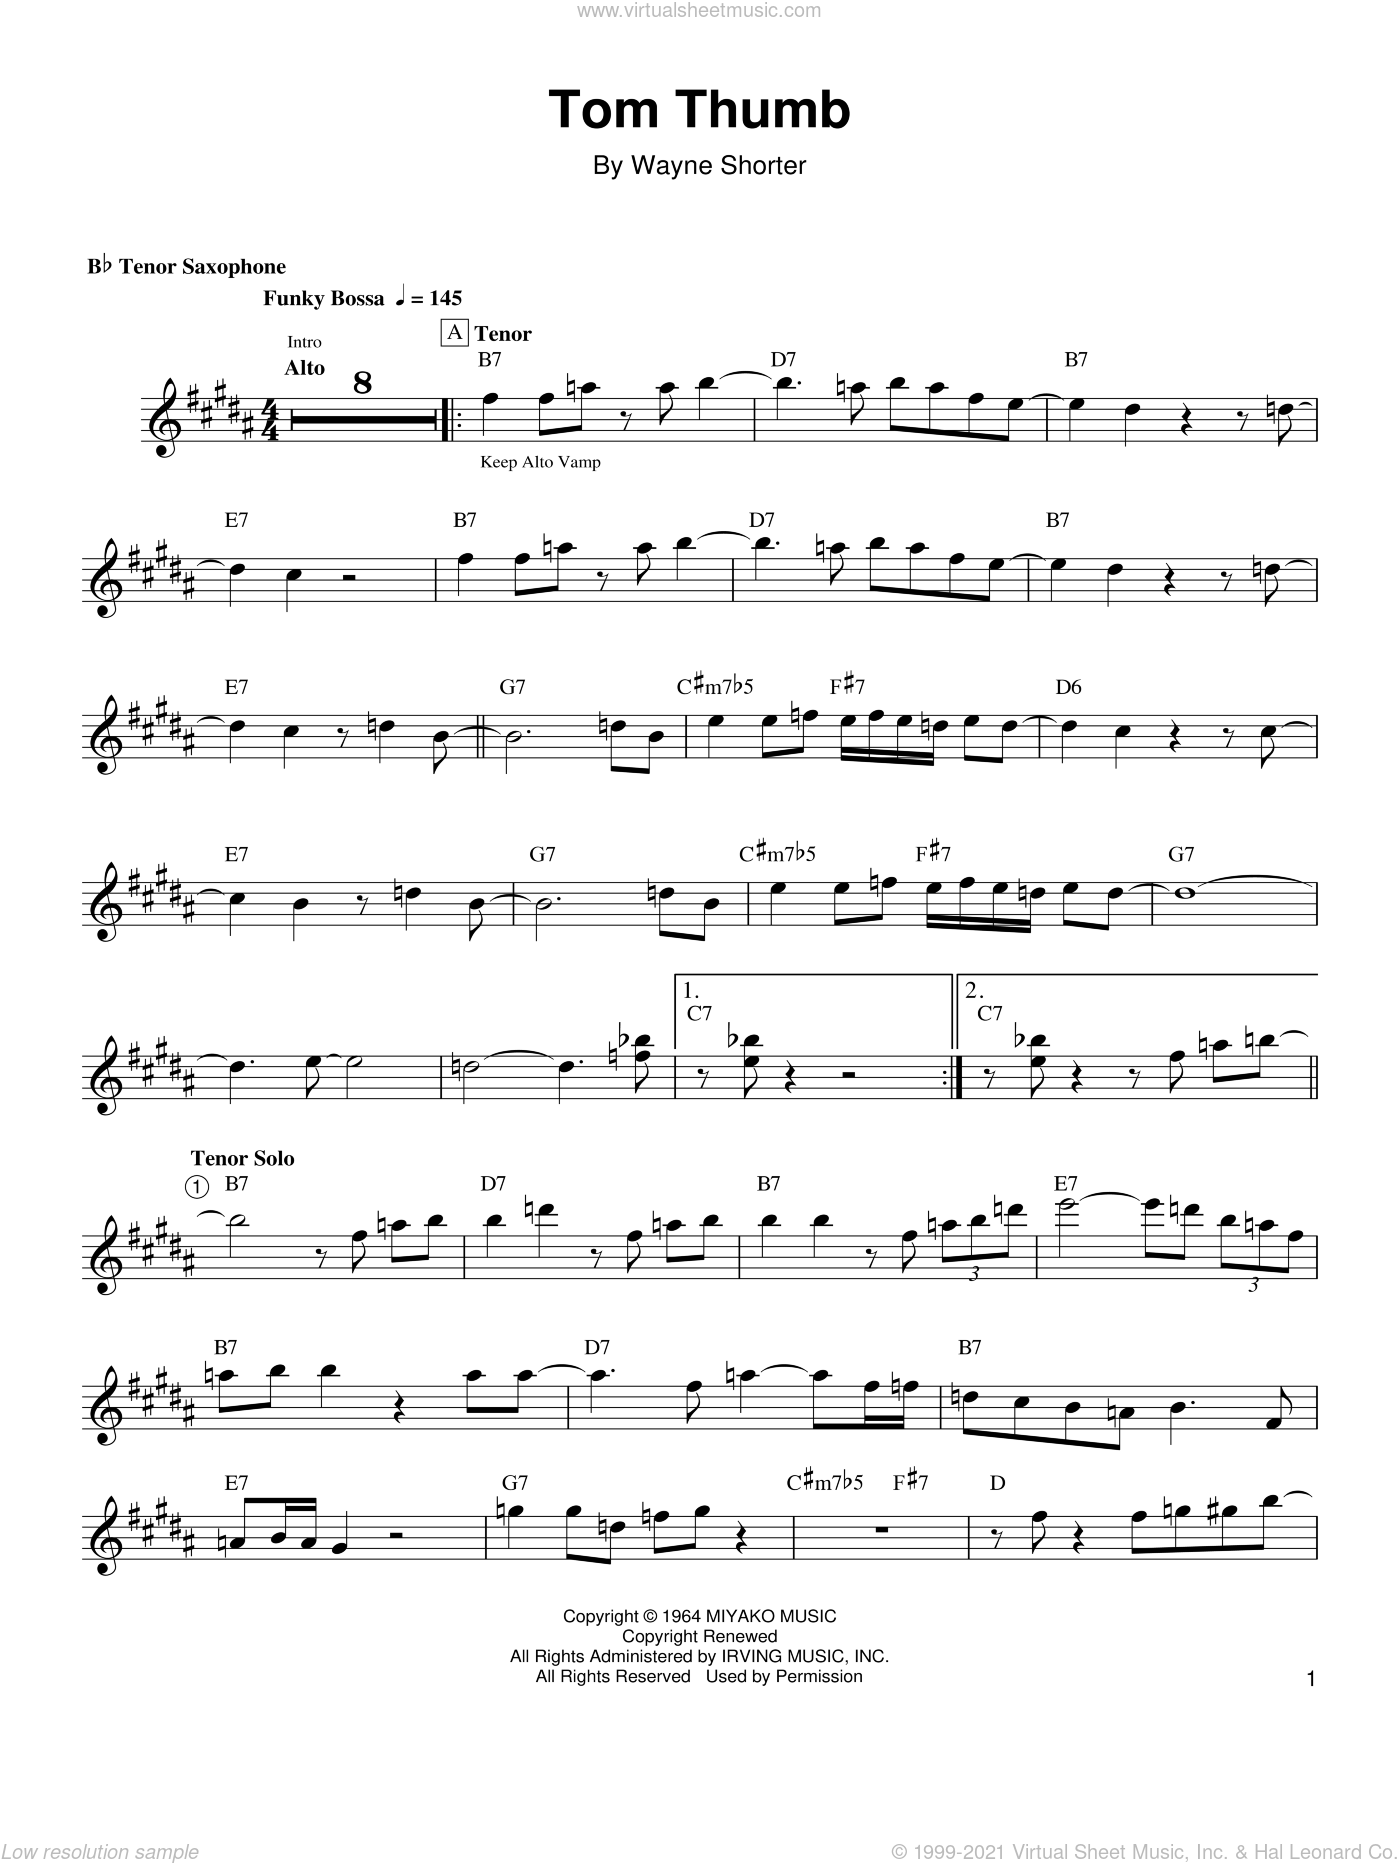 Tom Thumb sheet music for tenor saxophone solo (transcription) by Wayne Shorter. Score Image Preview.